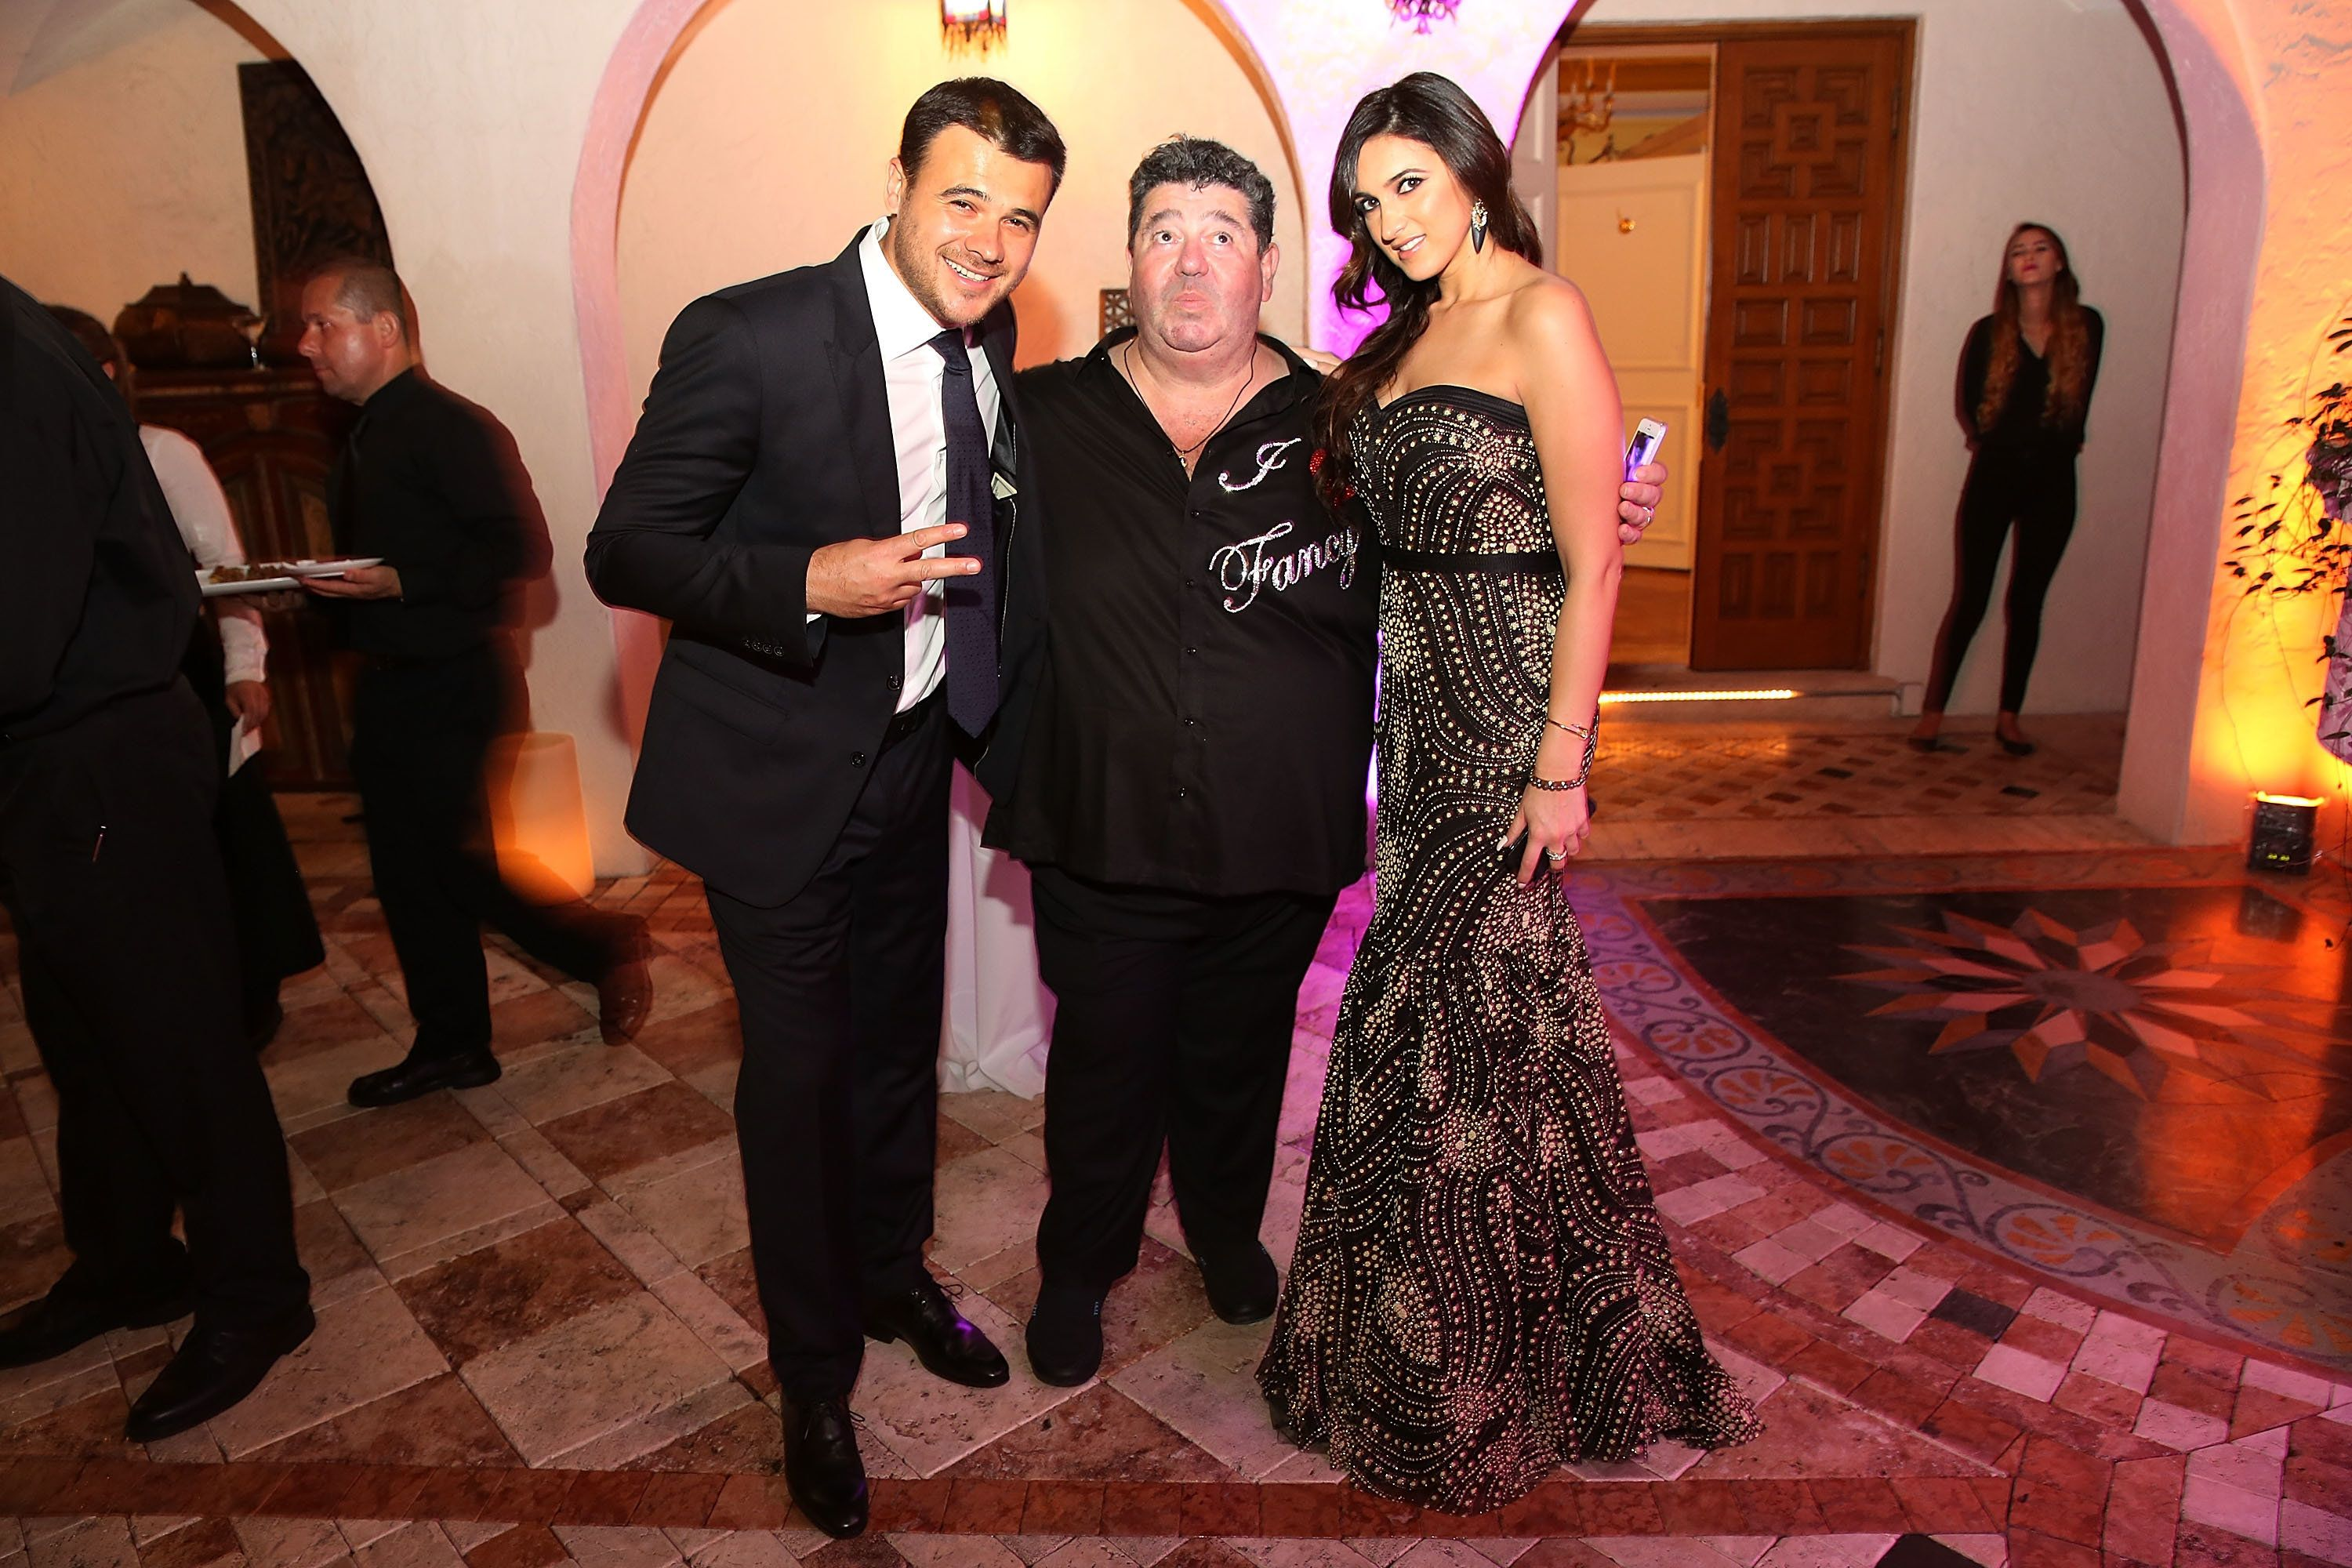 MIAMI BEACH, FL - DECEMBER 31: Emin Agalarov, Rob Goldstone and Sheila Agalarova attends New Years Eve And Birthday Party For Irina Agalarova at Barton G on December 31, 2014 in Miami Beach, Florida. (Photo by Aaron Davidson/Getty Images for Irina Agalarov)